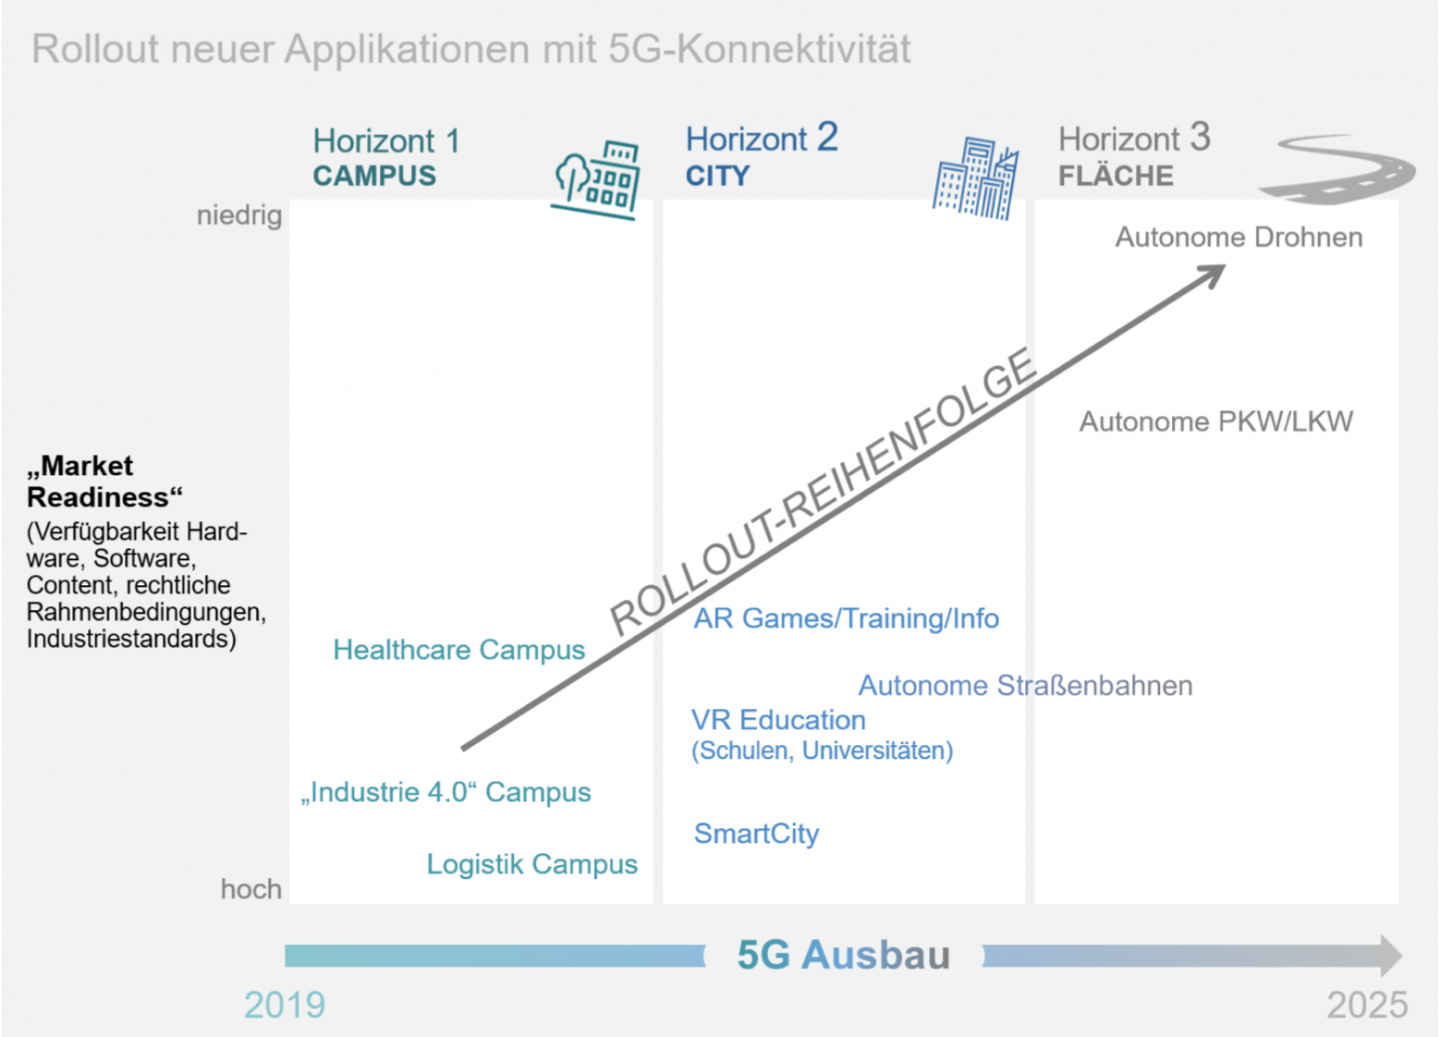 The Three Horizons of 5G Applications